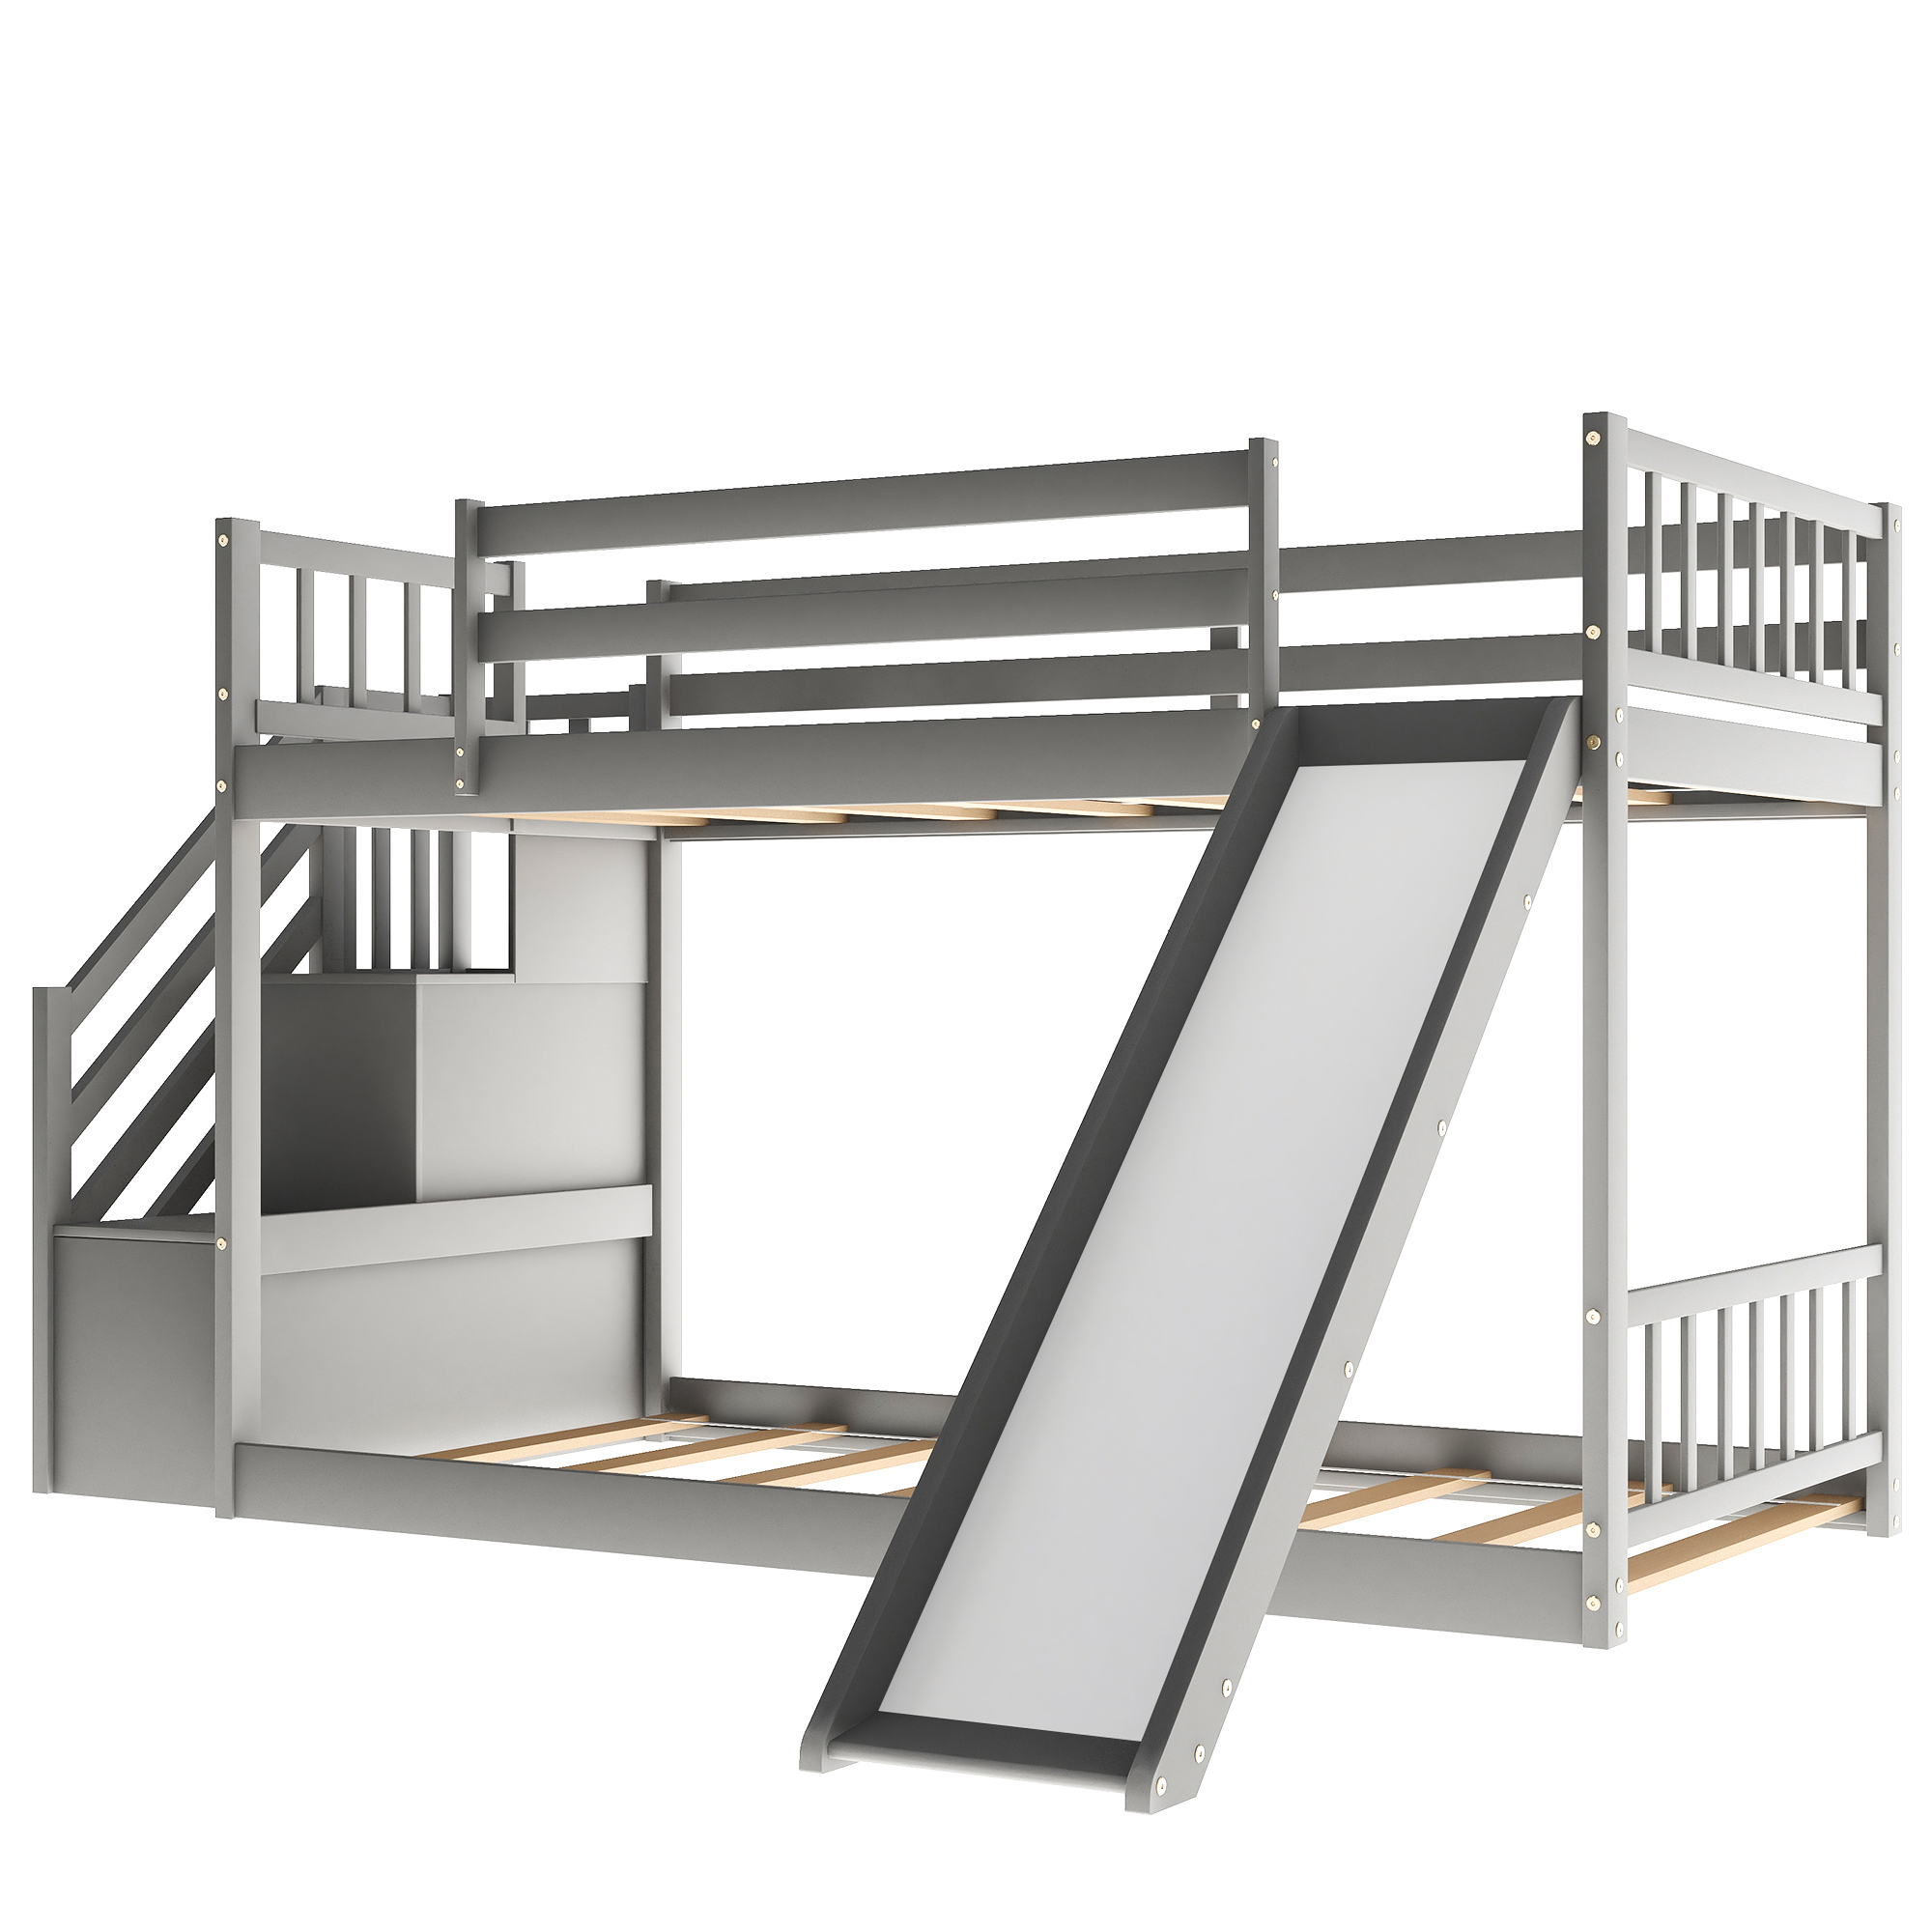 [US Direct] Double Bunk  Bed With Folding Slide Stairs Household Room Furniture Accessories grey